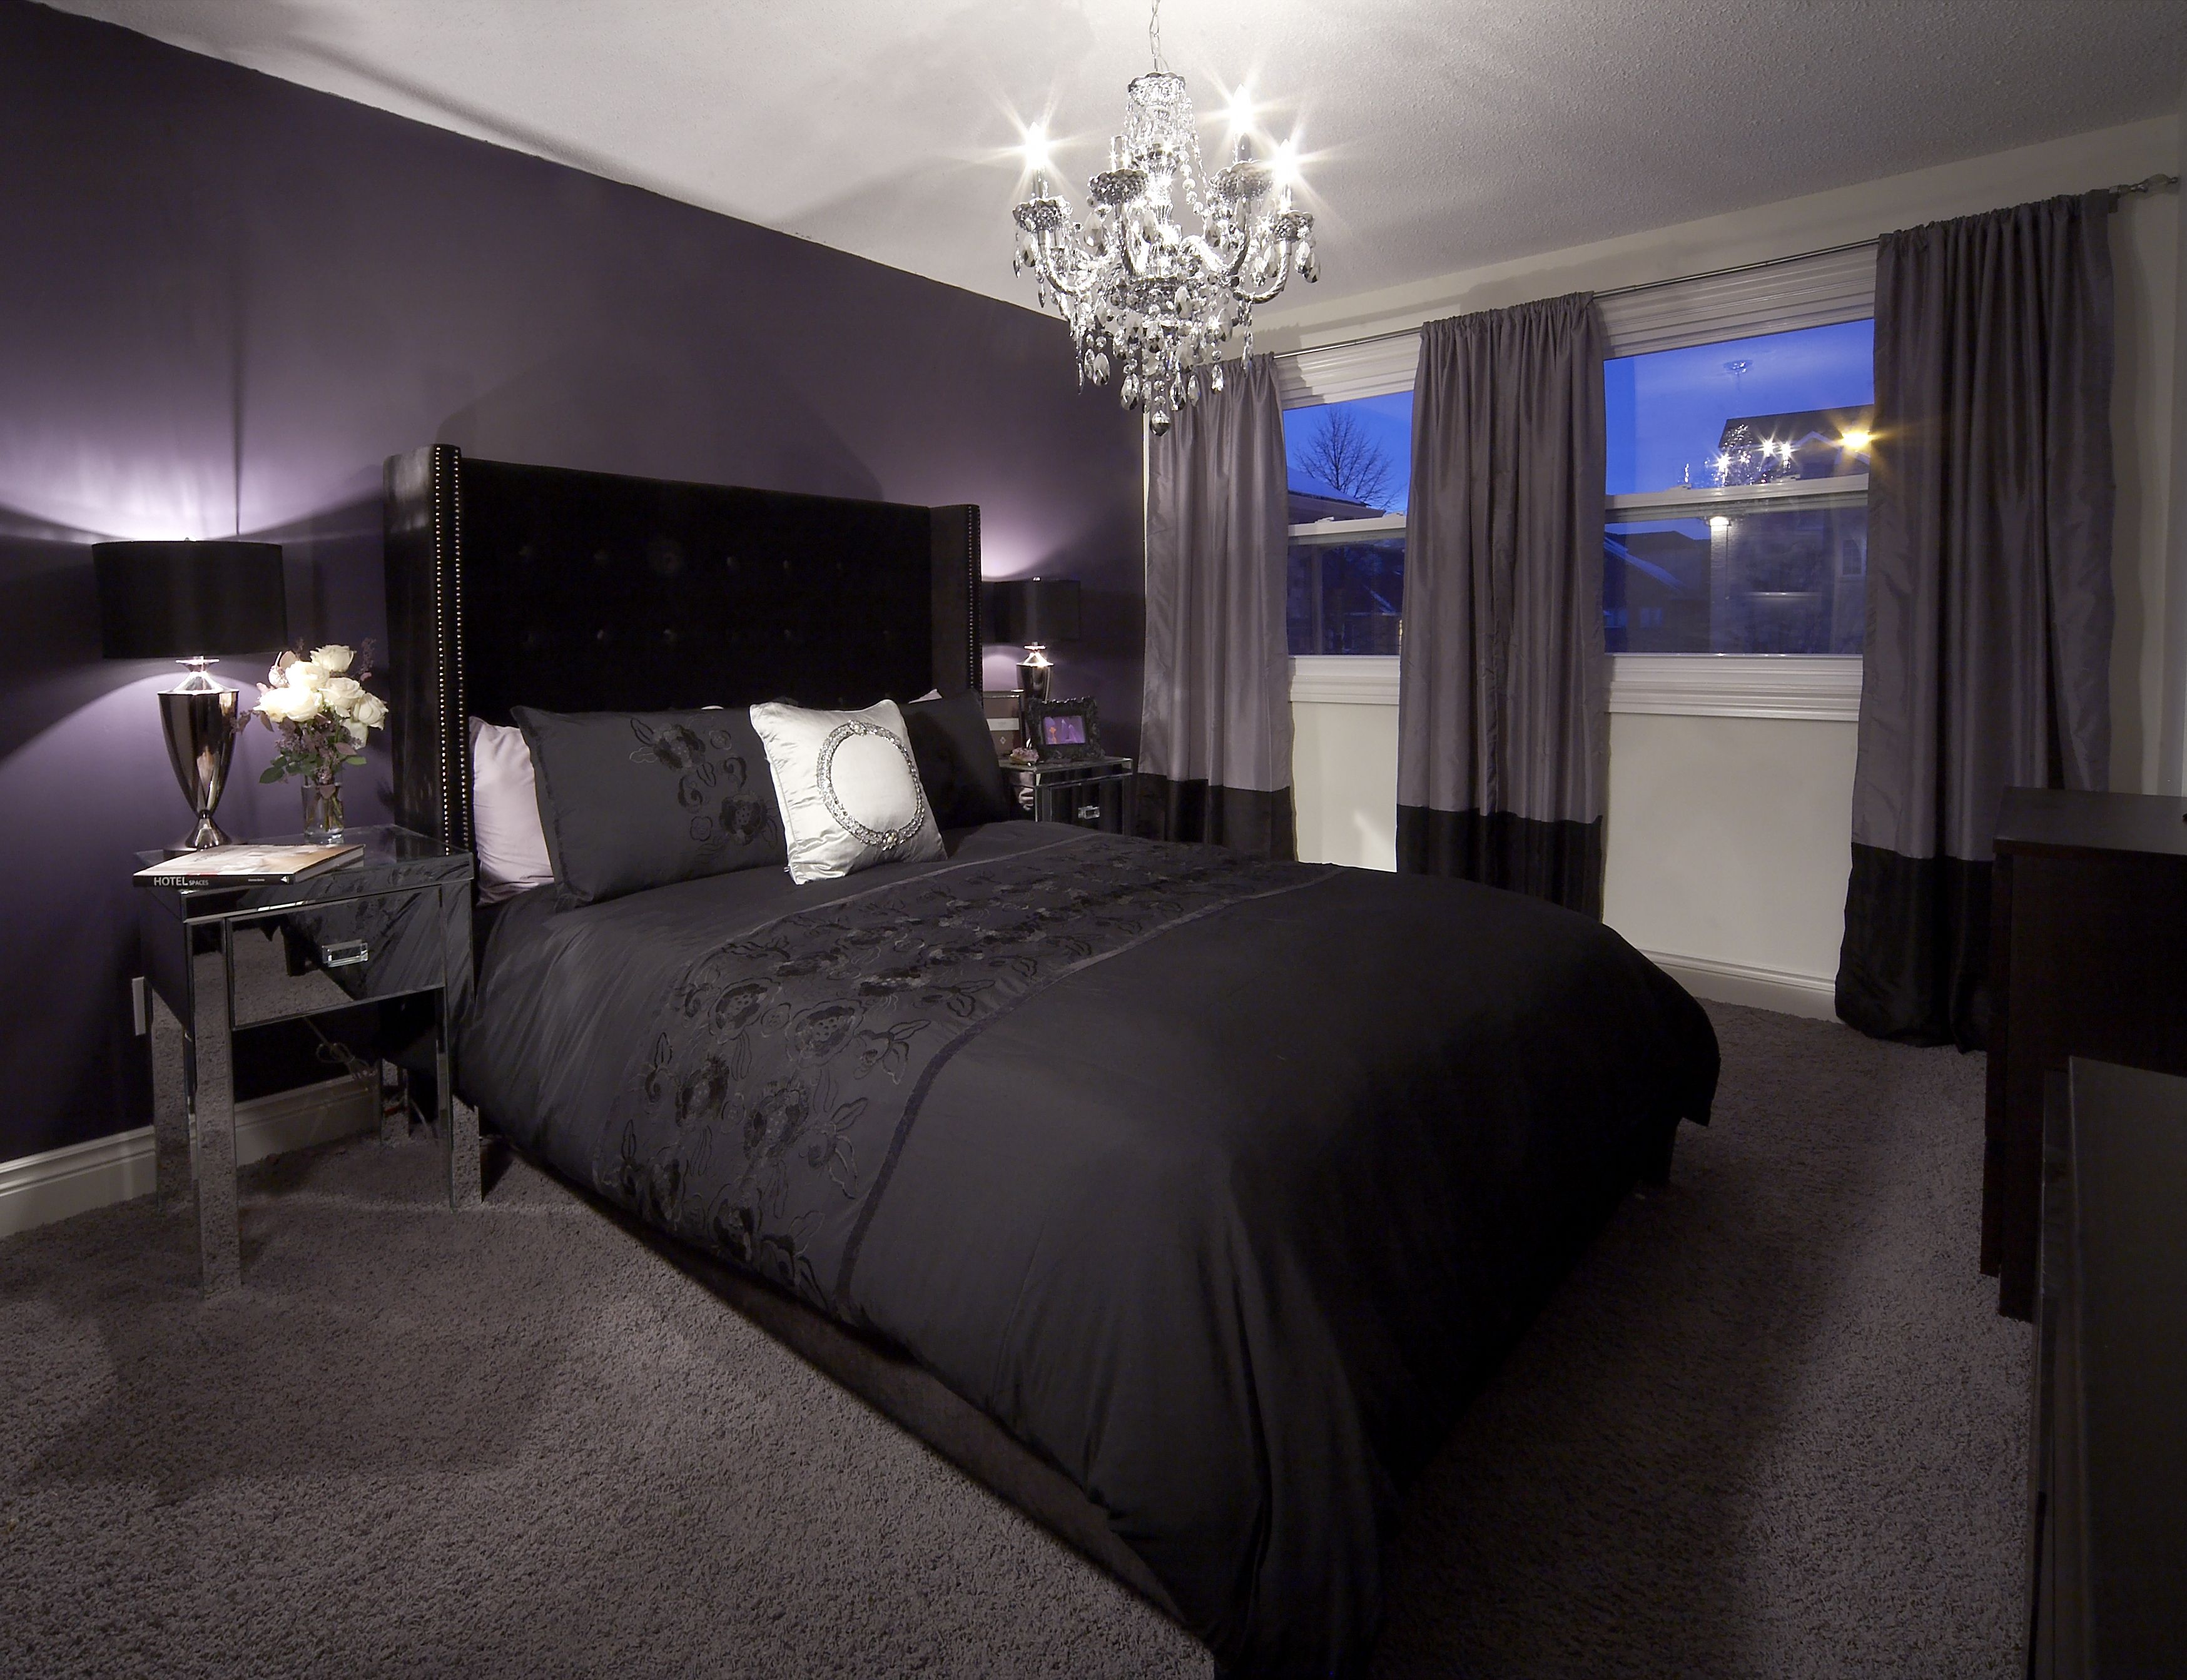 Bedroom with purple feature wall and drapery, crystal ...